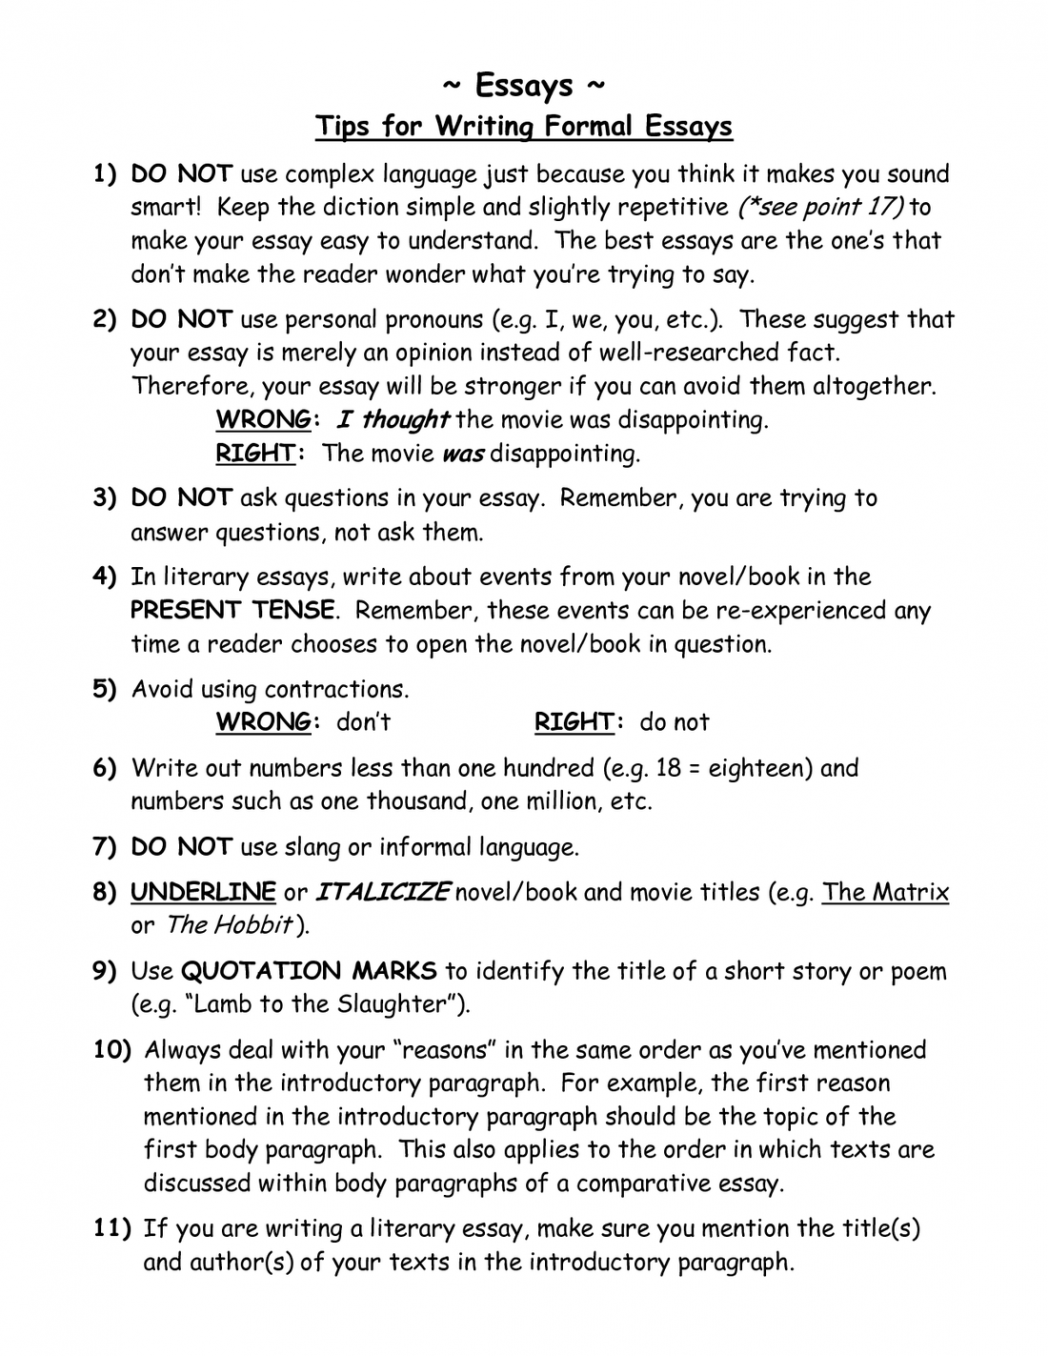 017 Discover What Not To Do When Creating School Essay Easy Way Write An On Book Books 1048x1356 Excellent Argumentative How Analytical Example In Ielts Task 2 Full